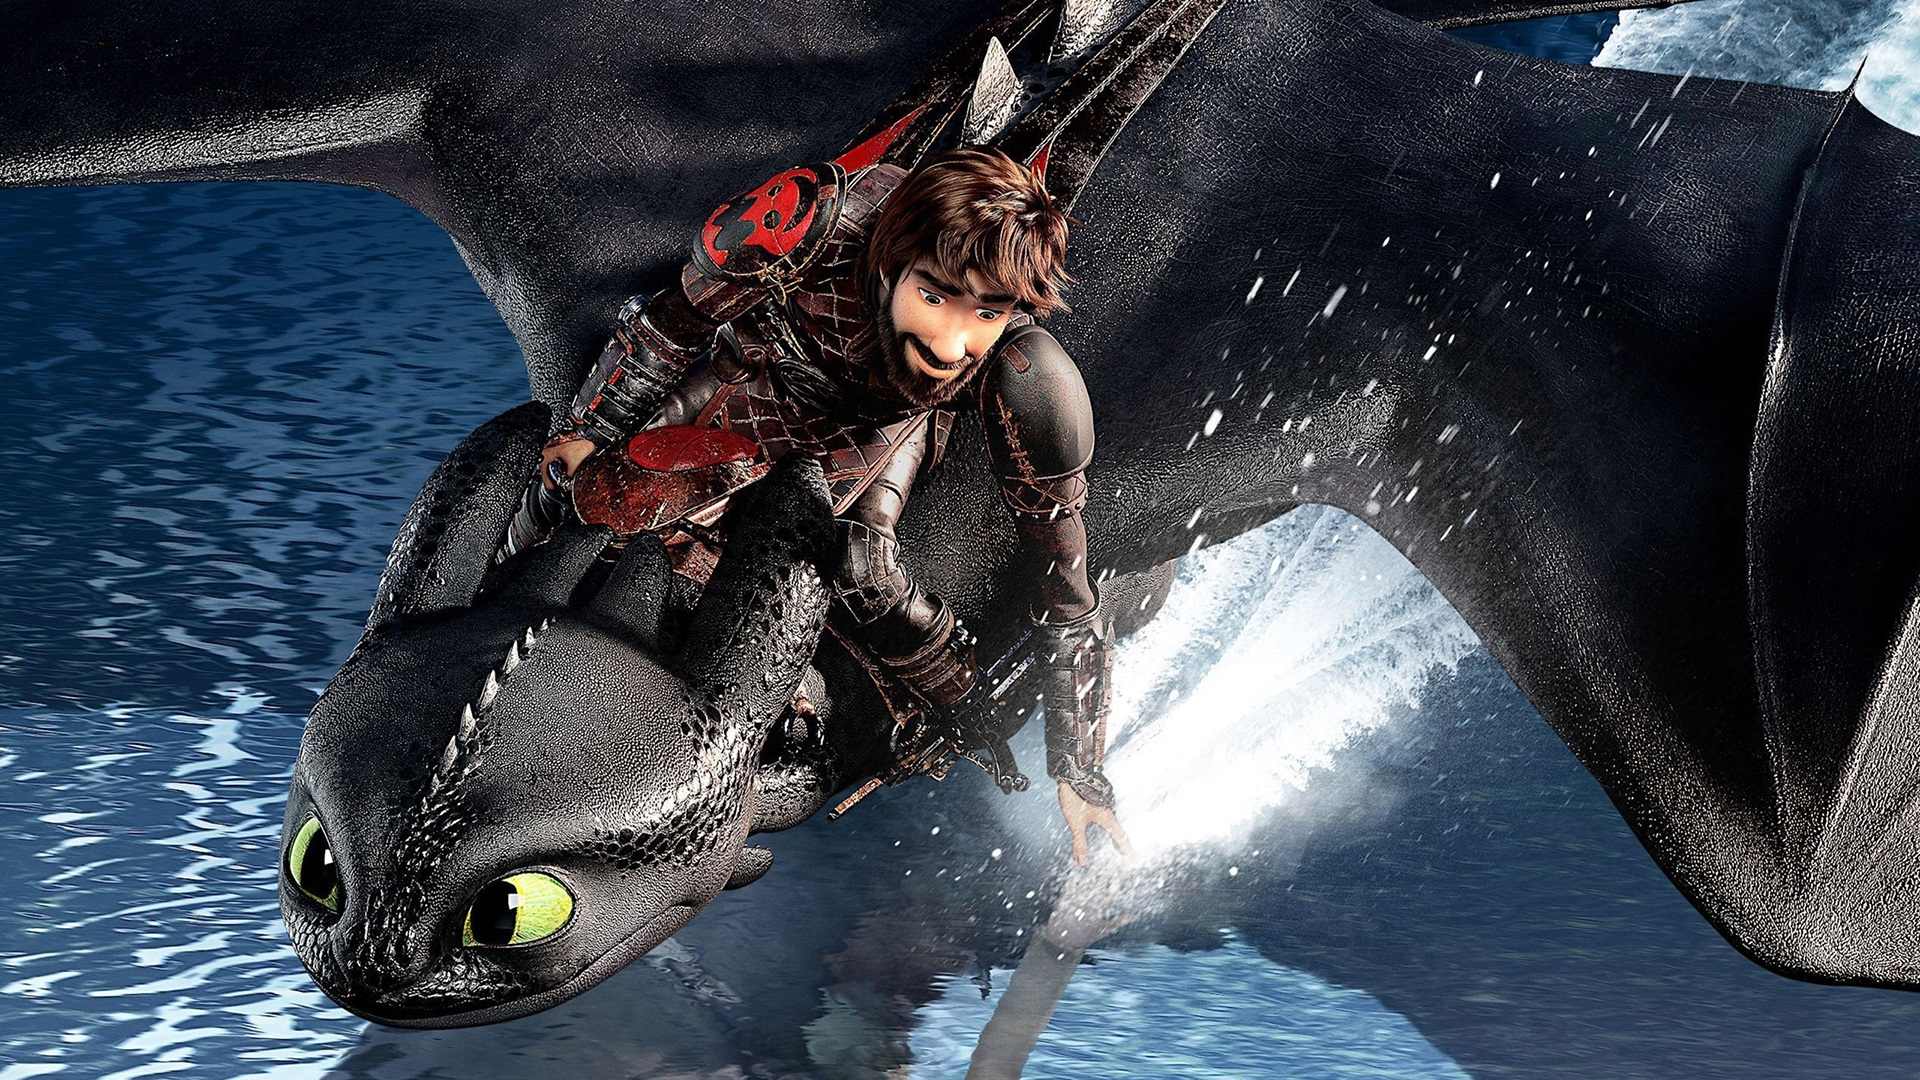 Wallpaper How To Train Your Dragon The Hidden World 1920x1080